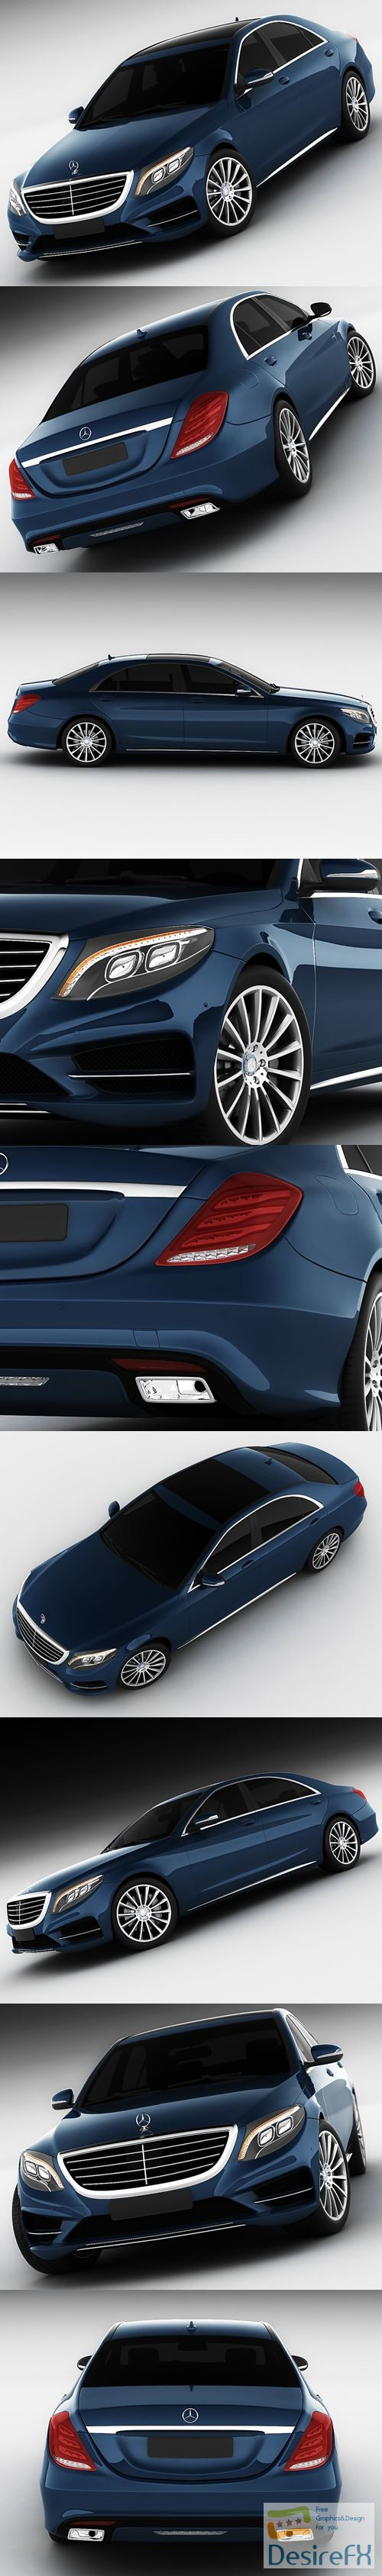 3d-models - Mercedes-Benz S-class 2014 AMG 3D Model